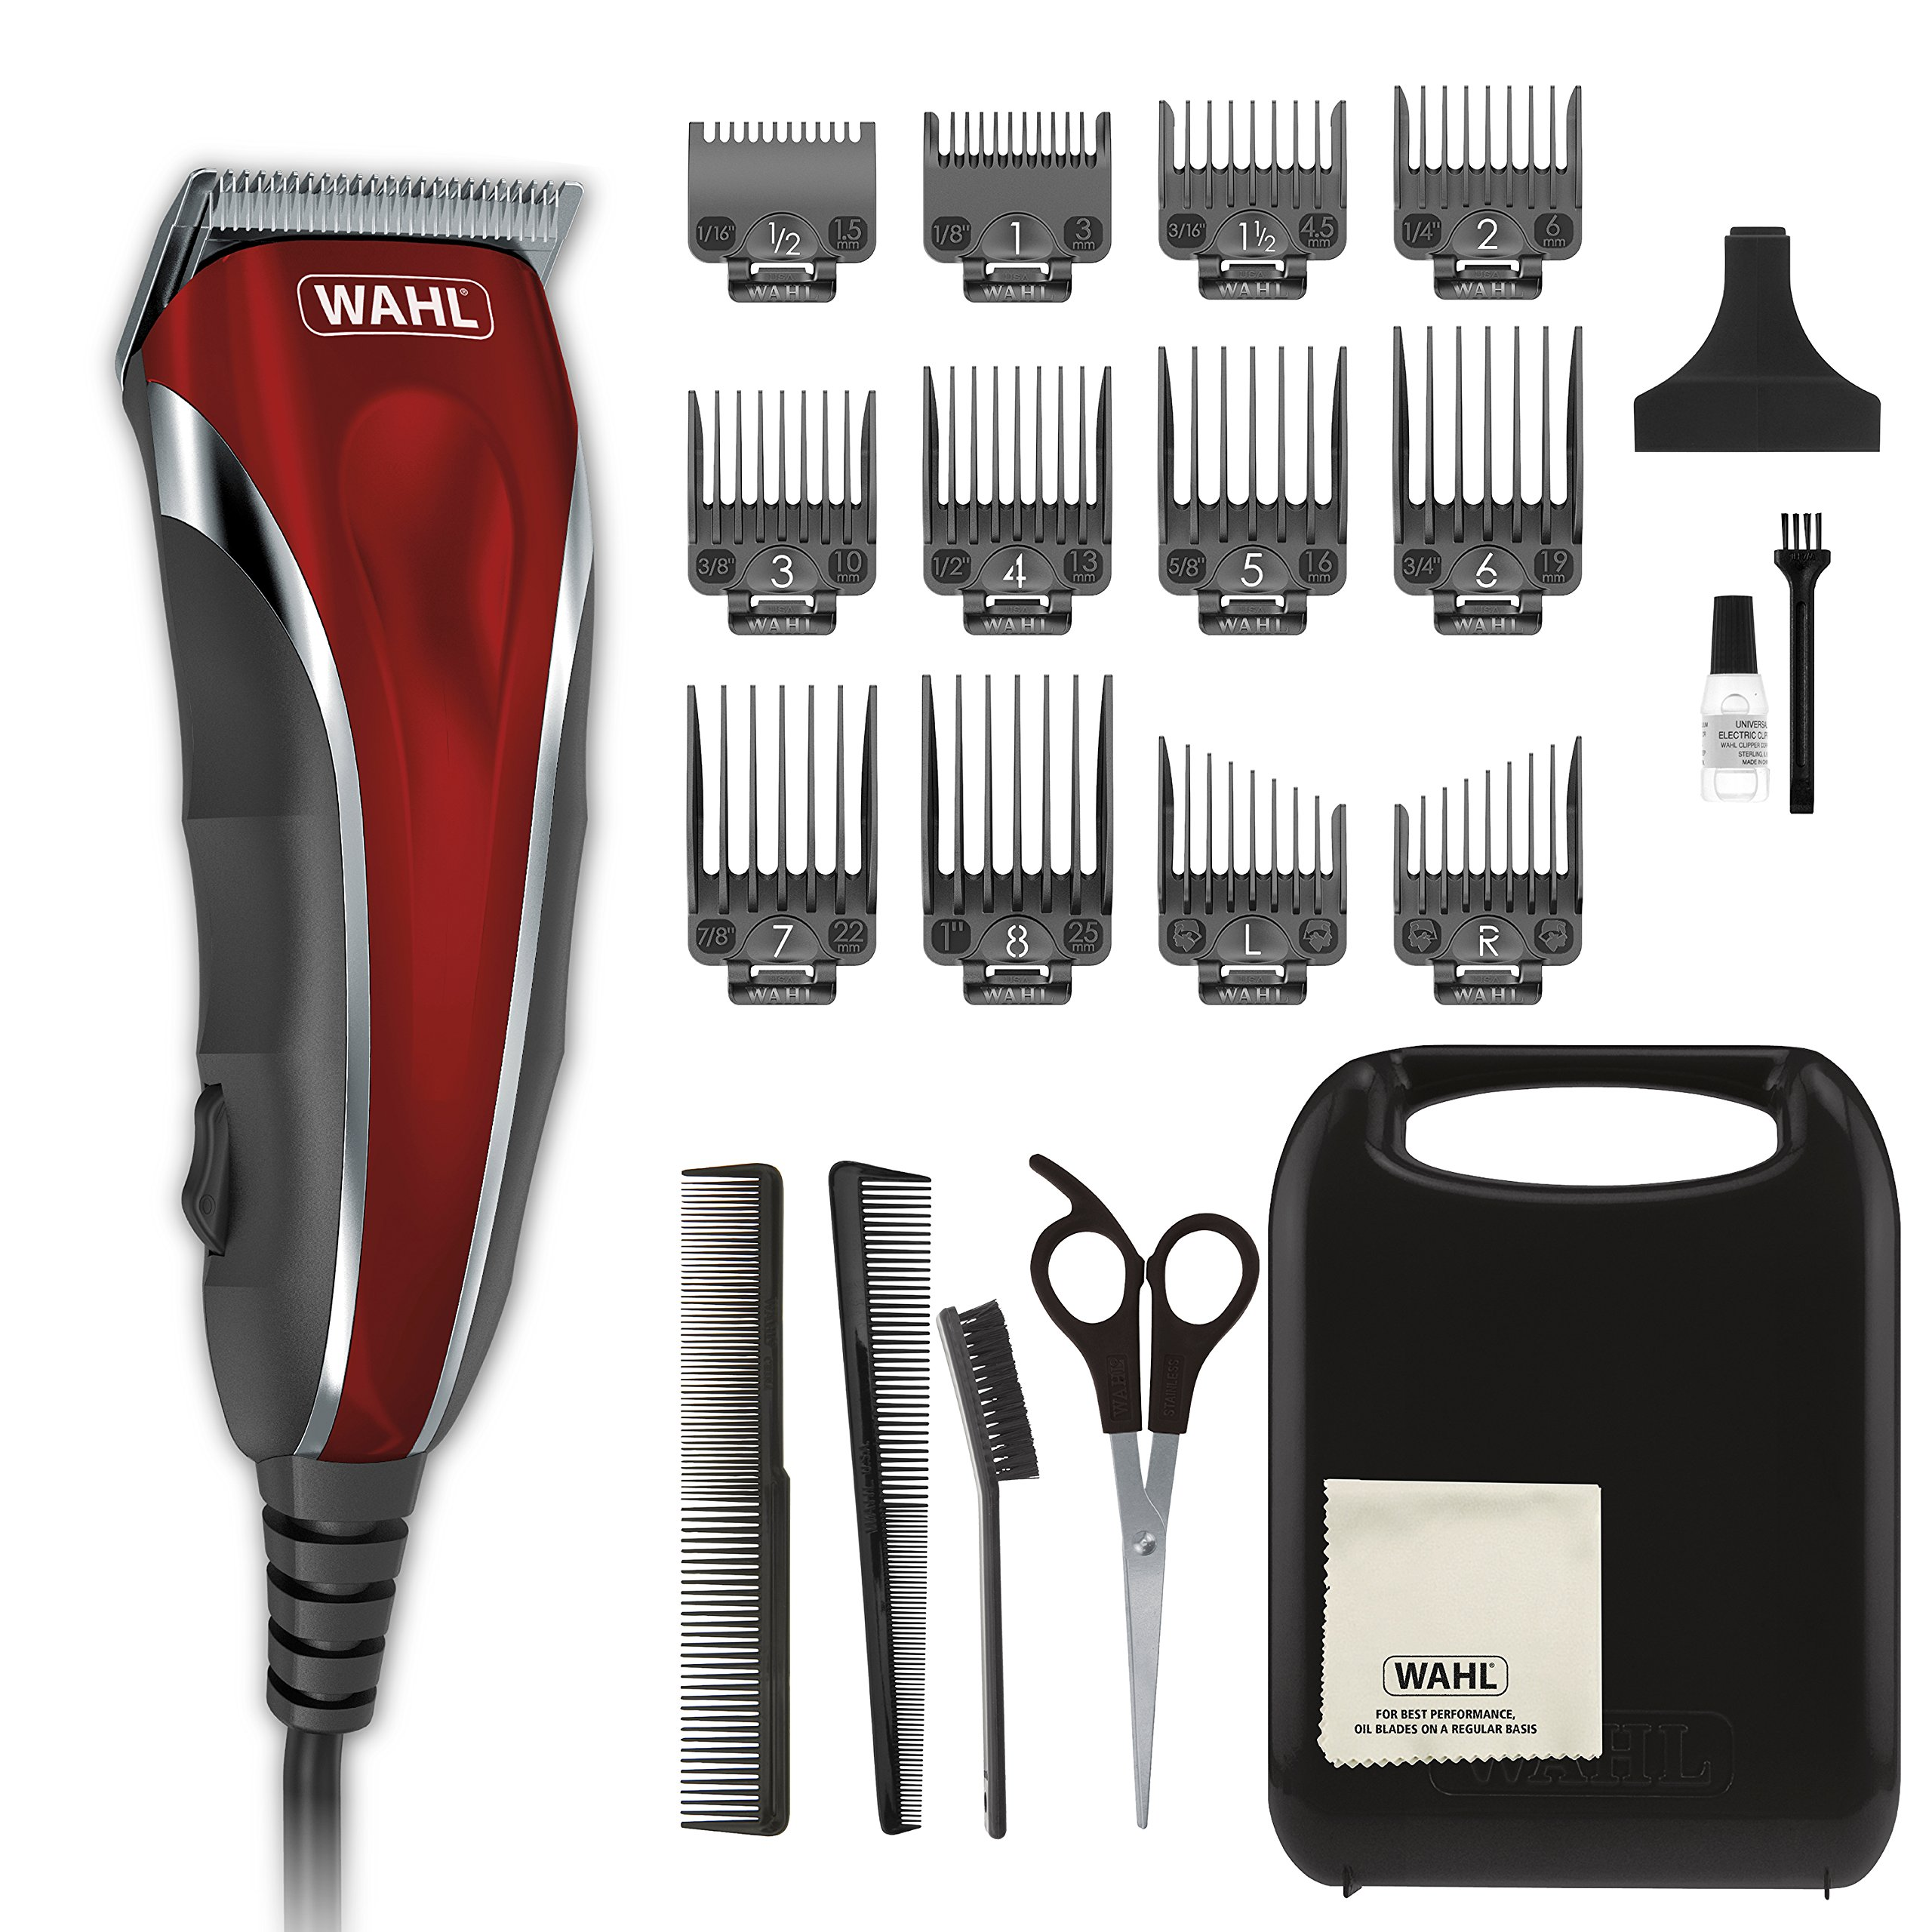 Wahl Clipper Compact Multi-Purpose Haircut, Beard, & Body Grooming hair Clipper & Trimmer with extreme Power & Easy Clean Blades - model 79607 by WAHL